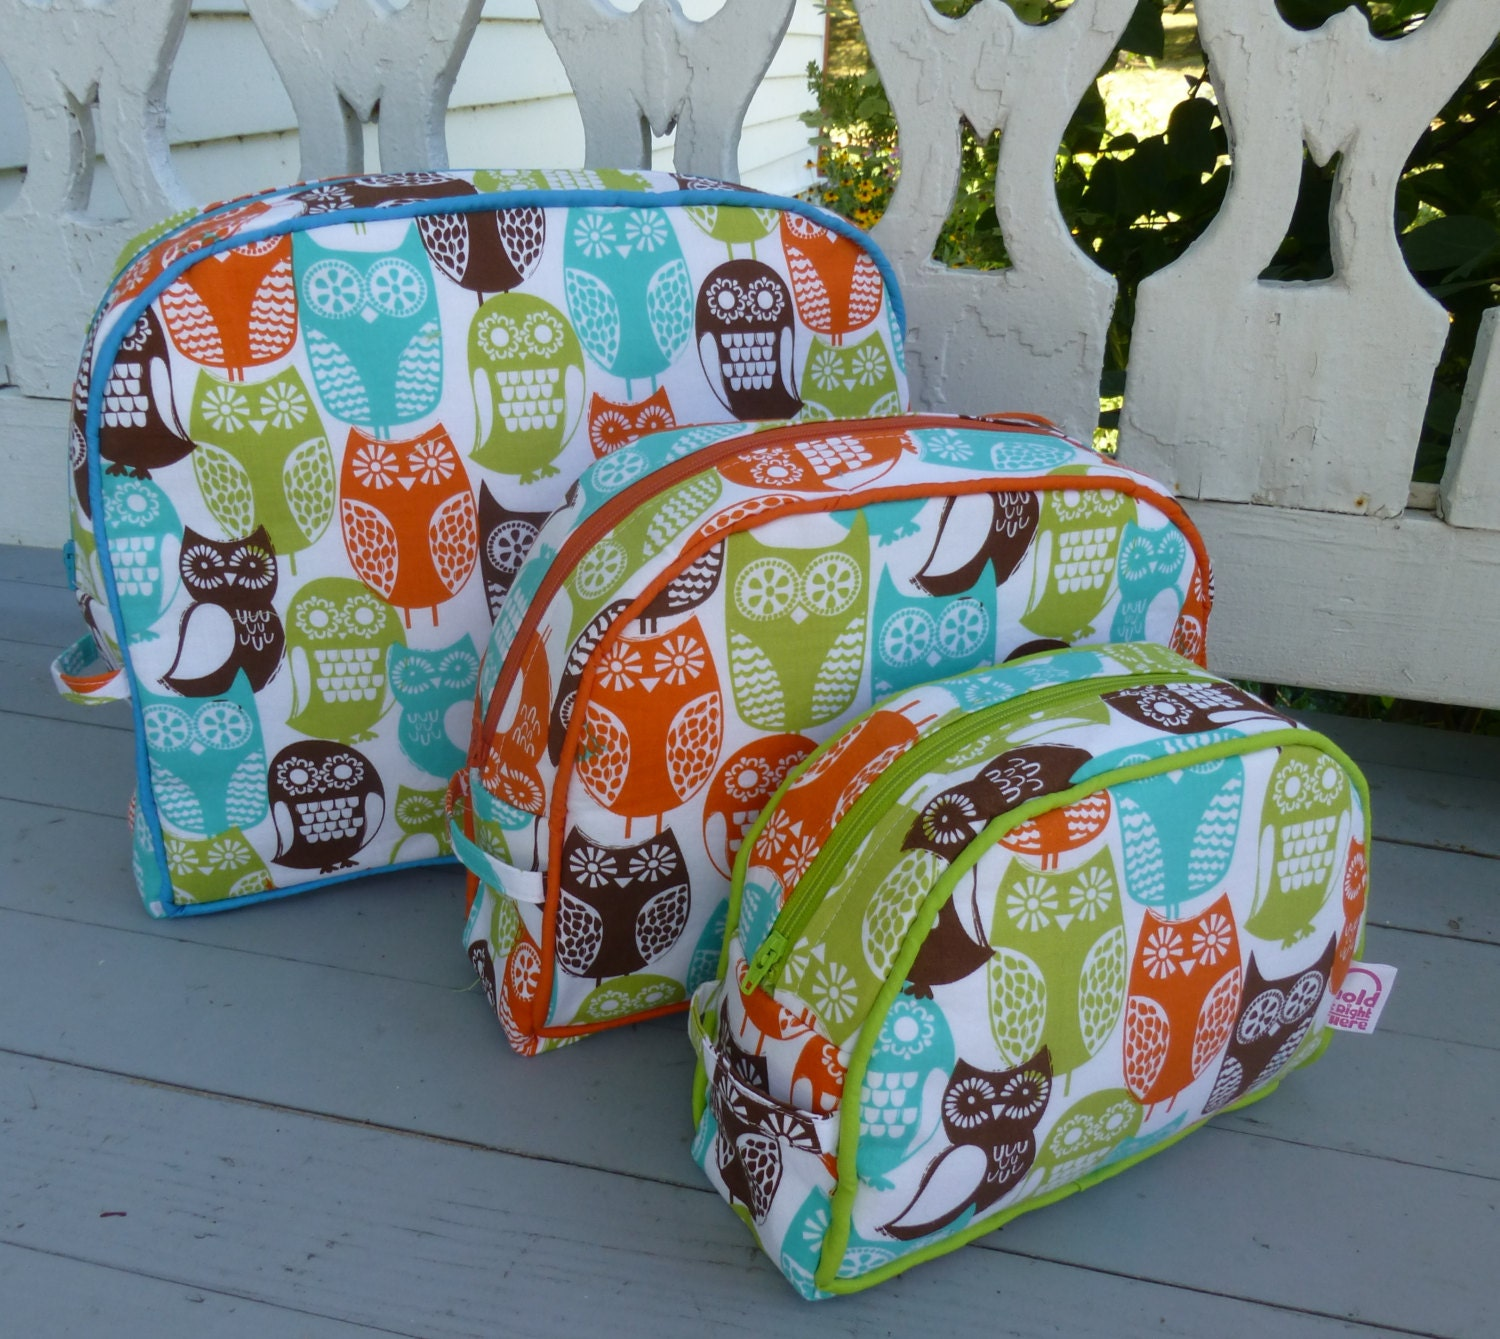 3 COSMETIC BAGS  -  Michael Miller - Swedish Owls Print  - Vinyl interior - Pockets and bound seams - Zippers and piping in matching colors - HolditRightThereBags